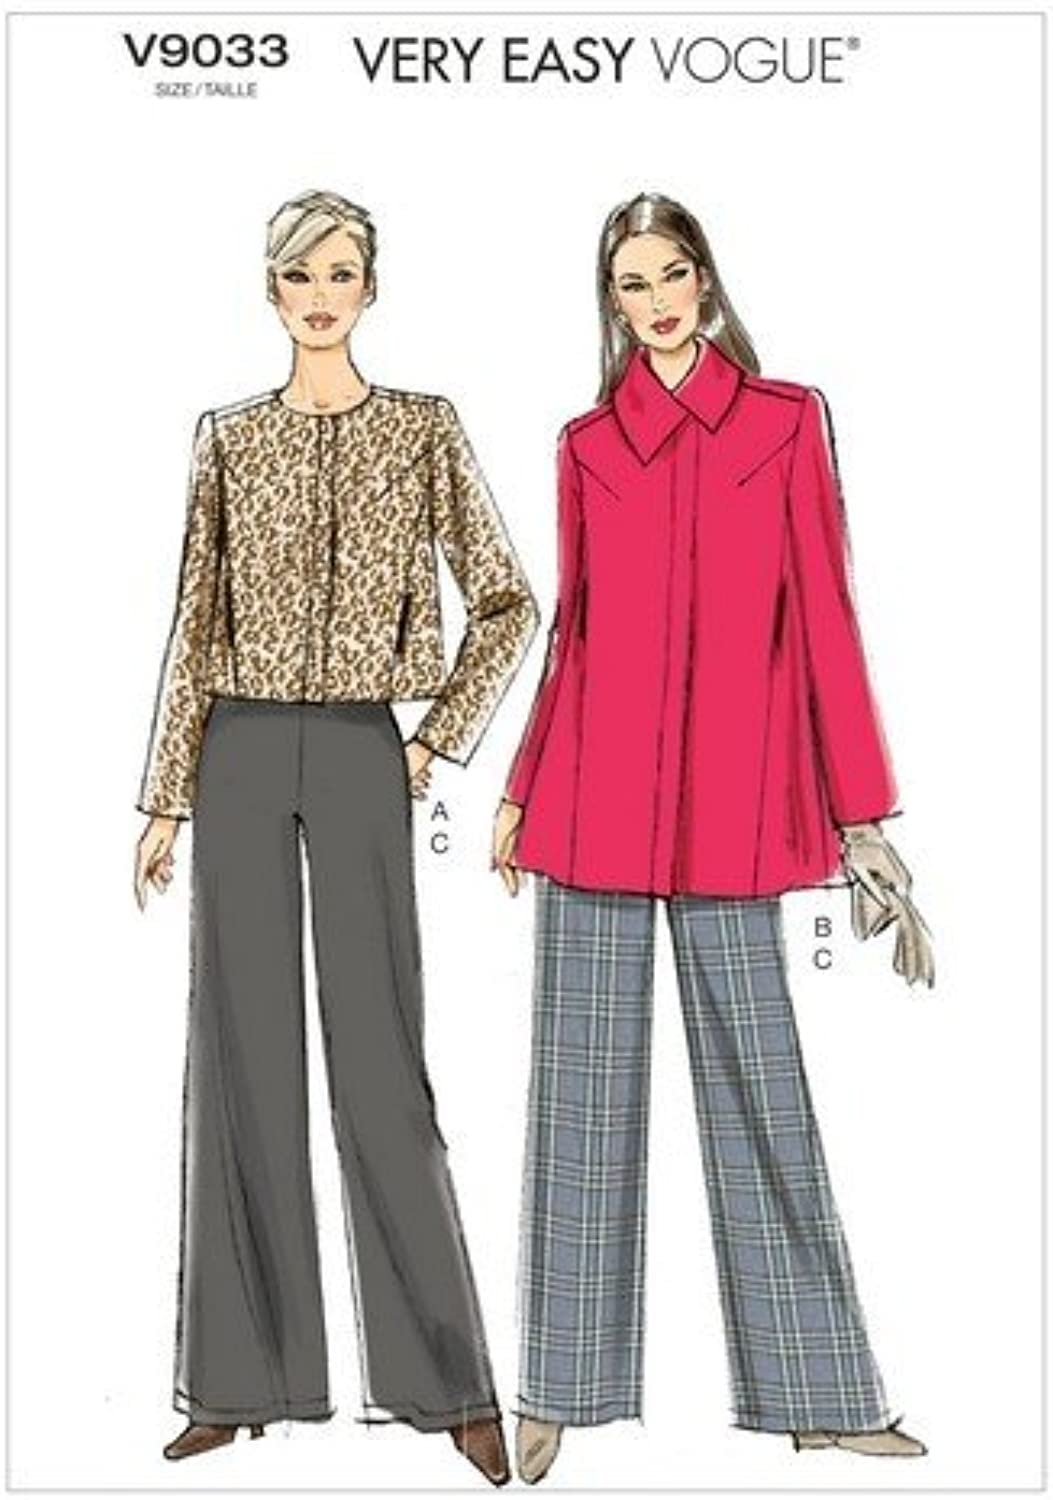 Vogue Patterns V9033 Misses' Jacket and Pants Sewing Template, Size Y (XSmallSmallMedium)